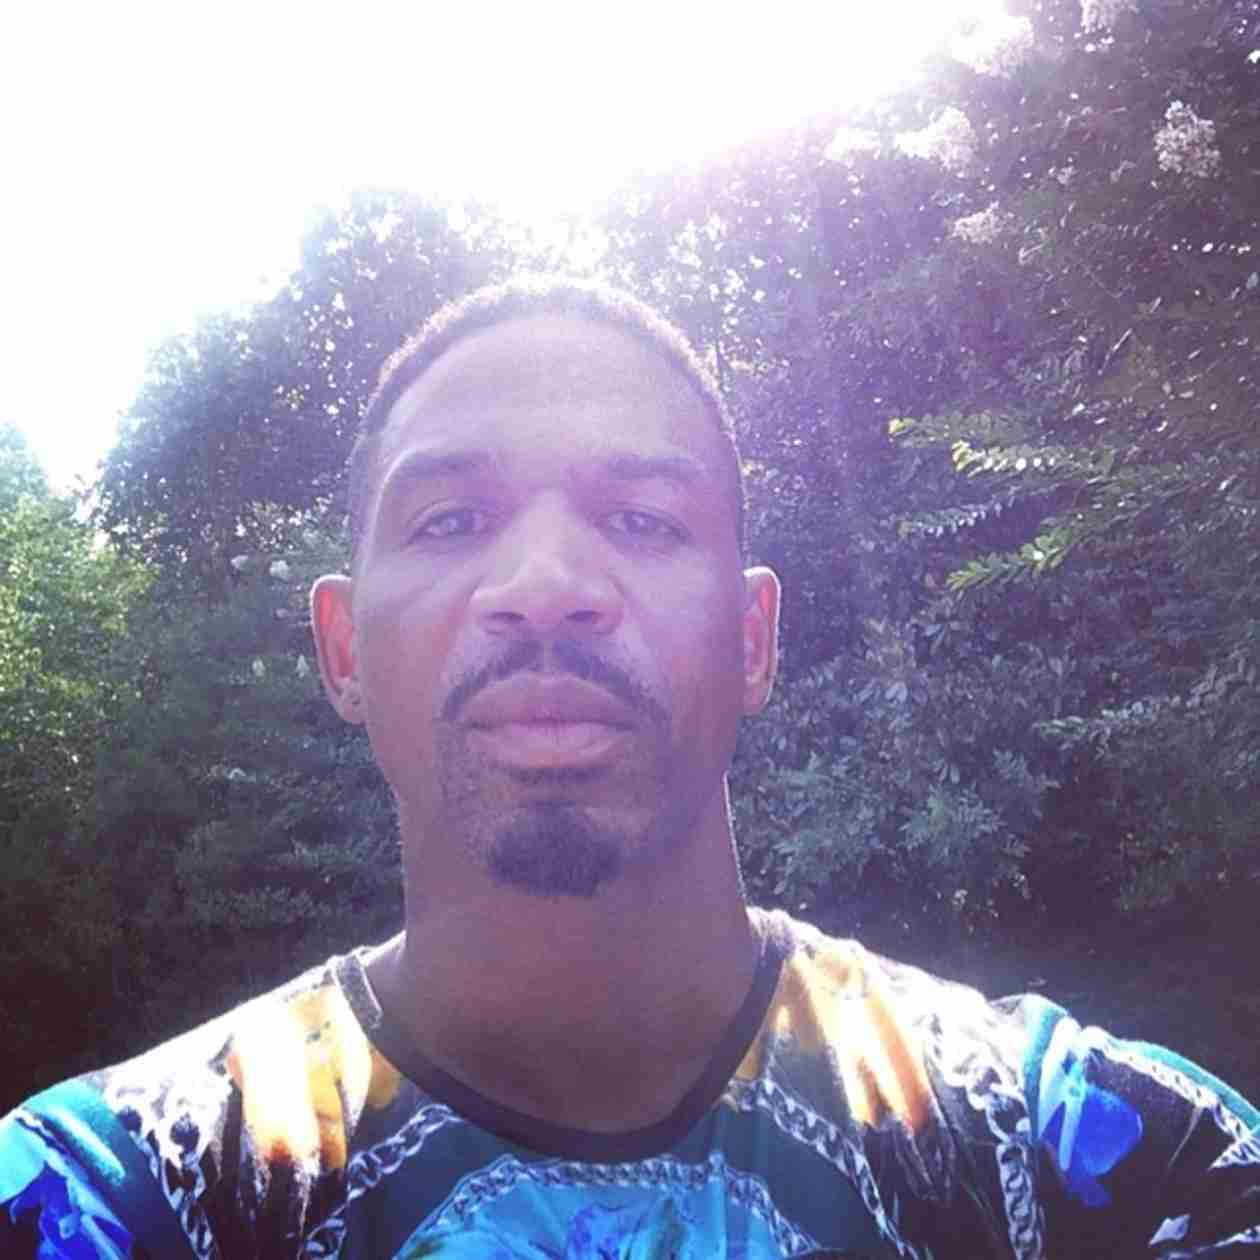 Stevie J. Shows Off Singing Talents on Instagram (VIDEO)